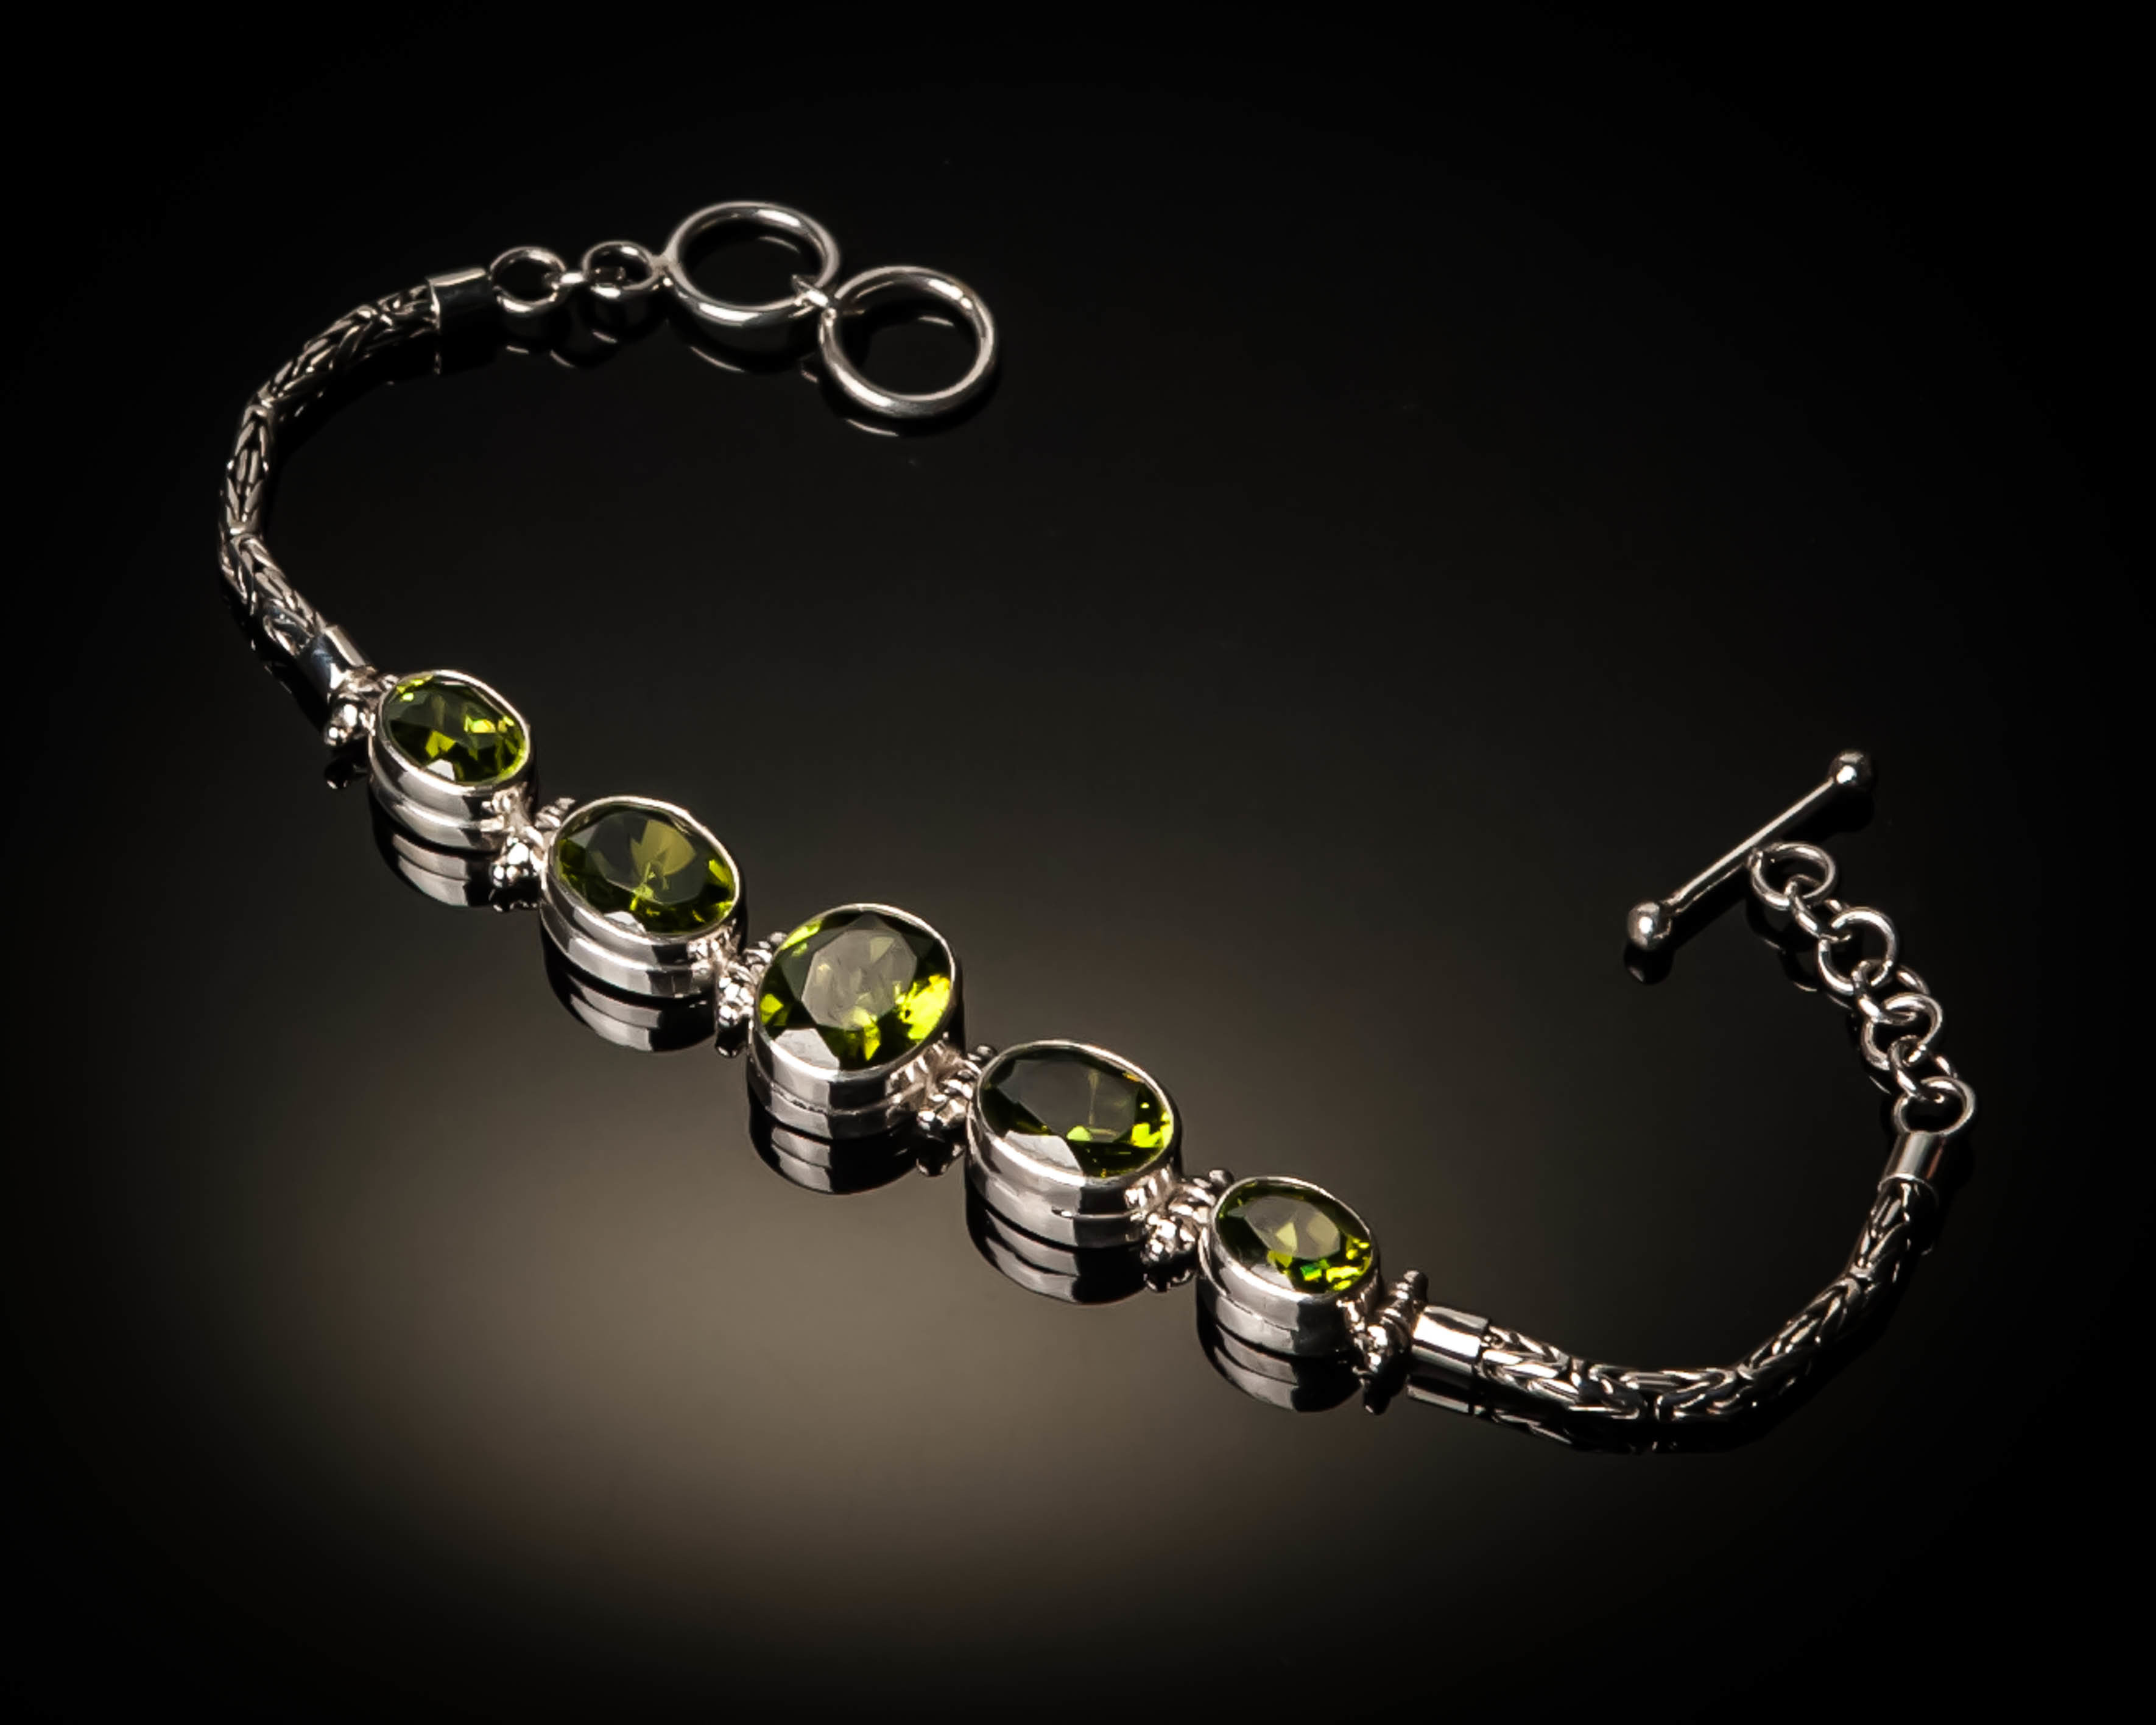 Sterling Silver with Natural Peridot Bracelet ELE-AGL-XXX Peridot